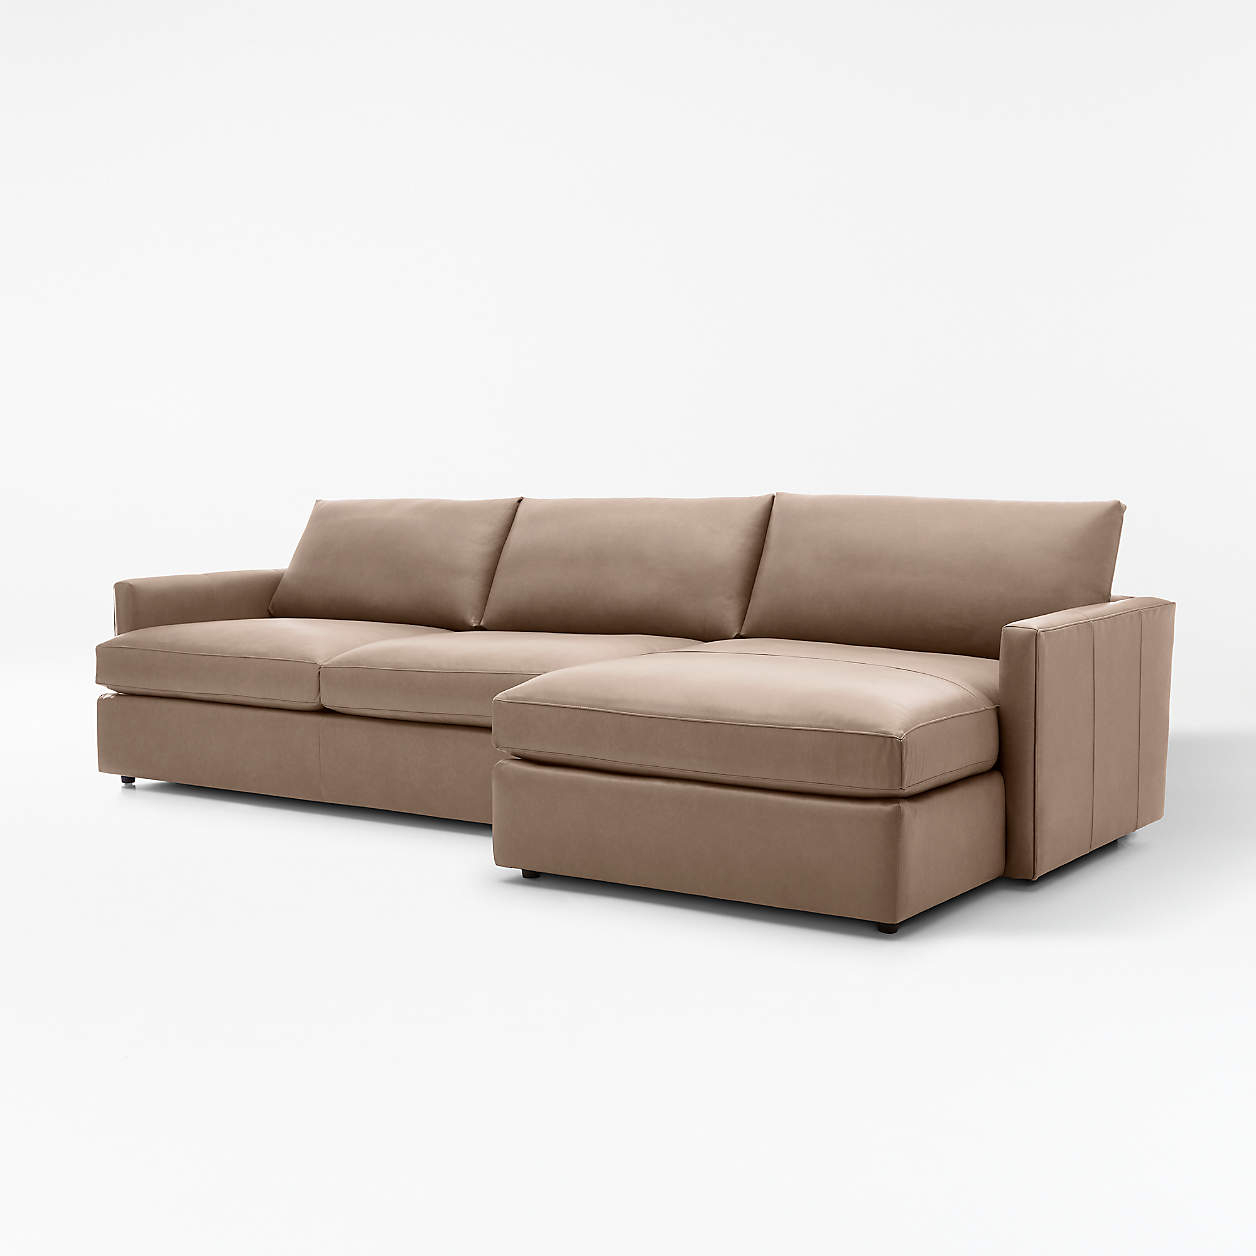 Crate Within Popular 2pc Maddox Right Arm Facing Sectional Sofas With Chaise Brown (View 8 of 20)